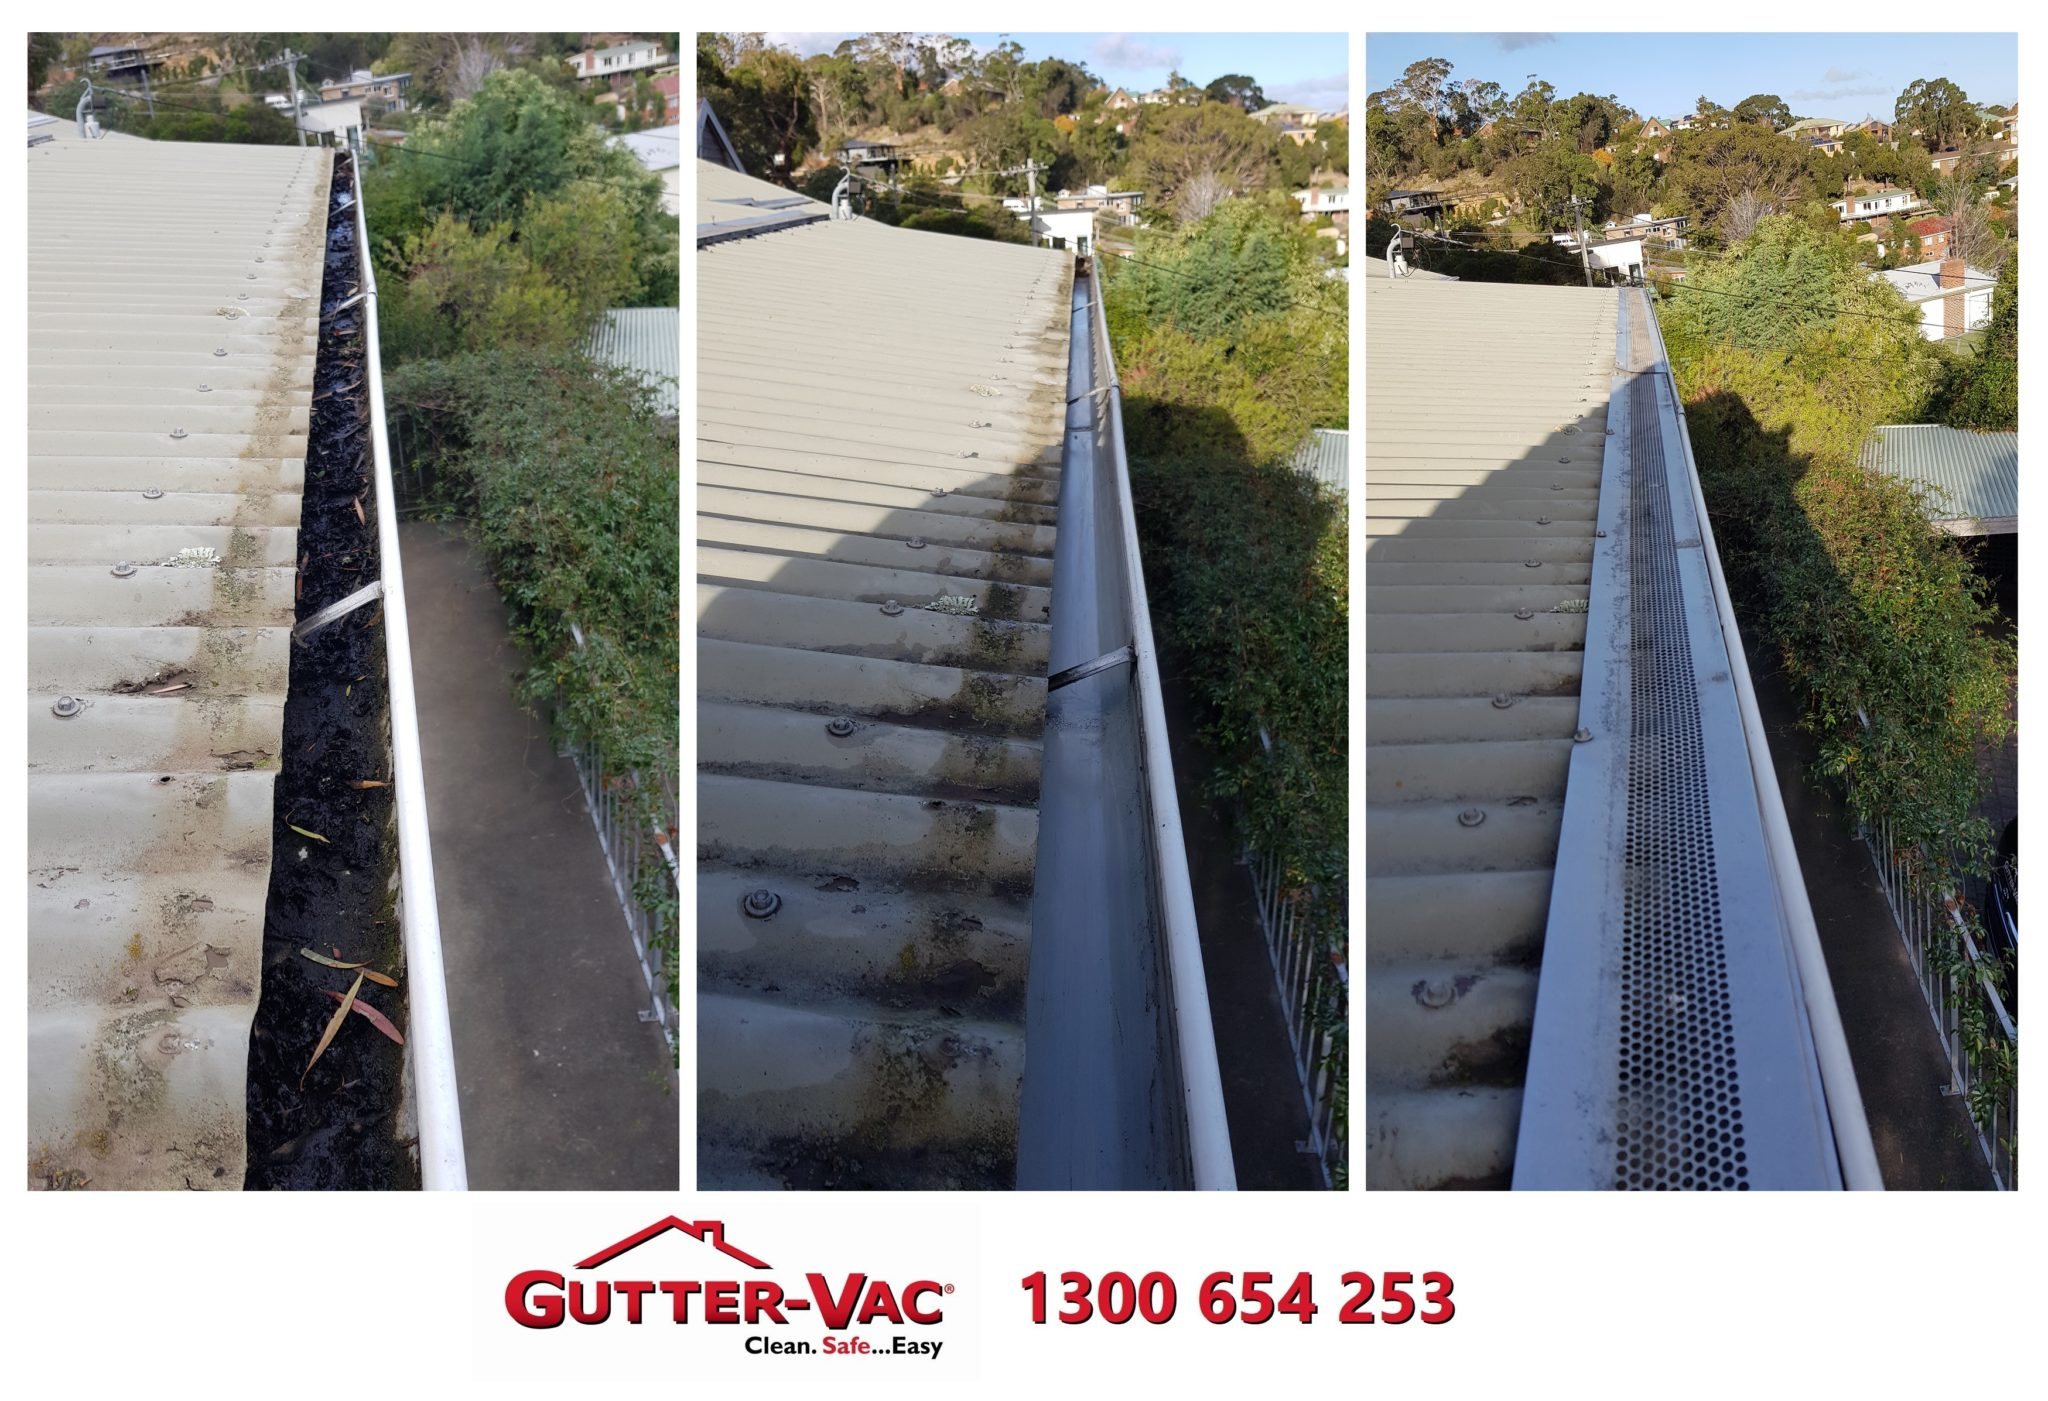 Gutter-Vac Tasmania Cleaning Under Gutter Guard